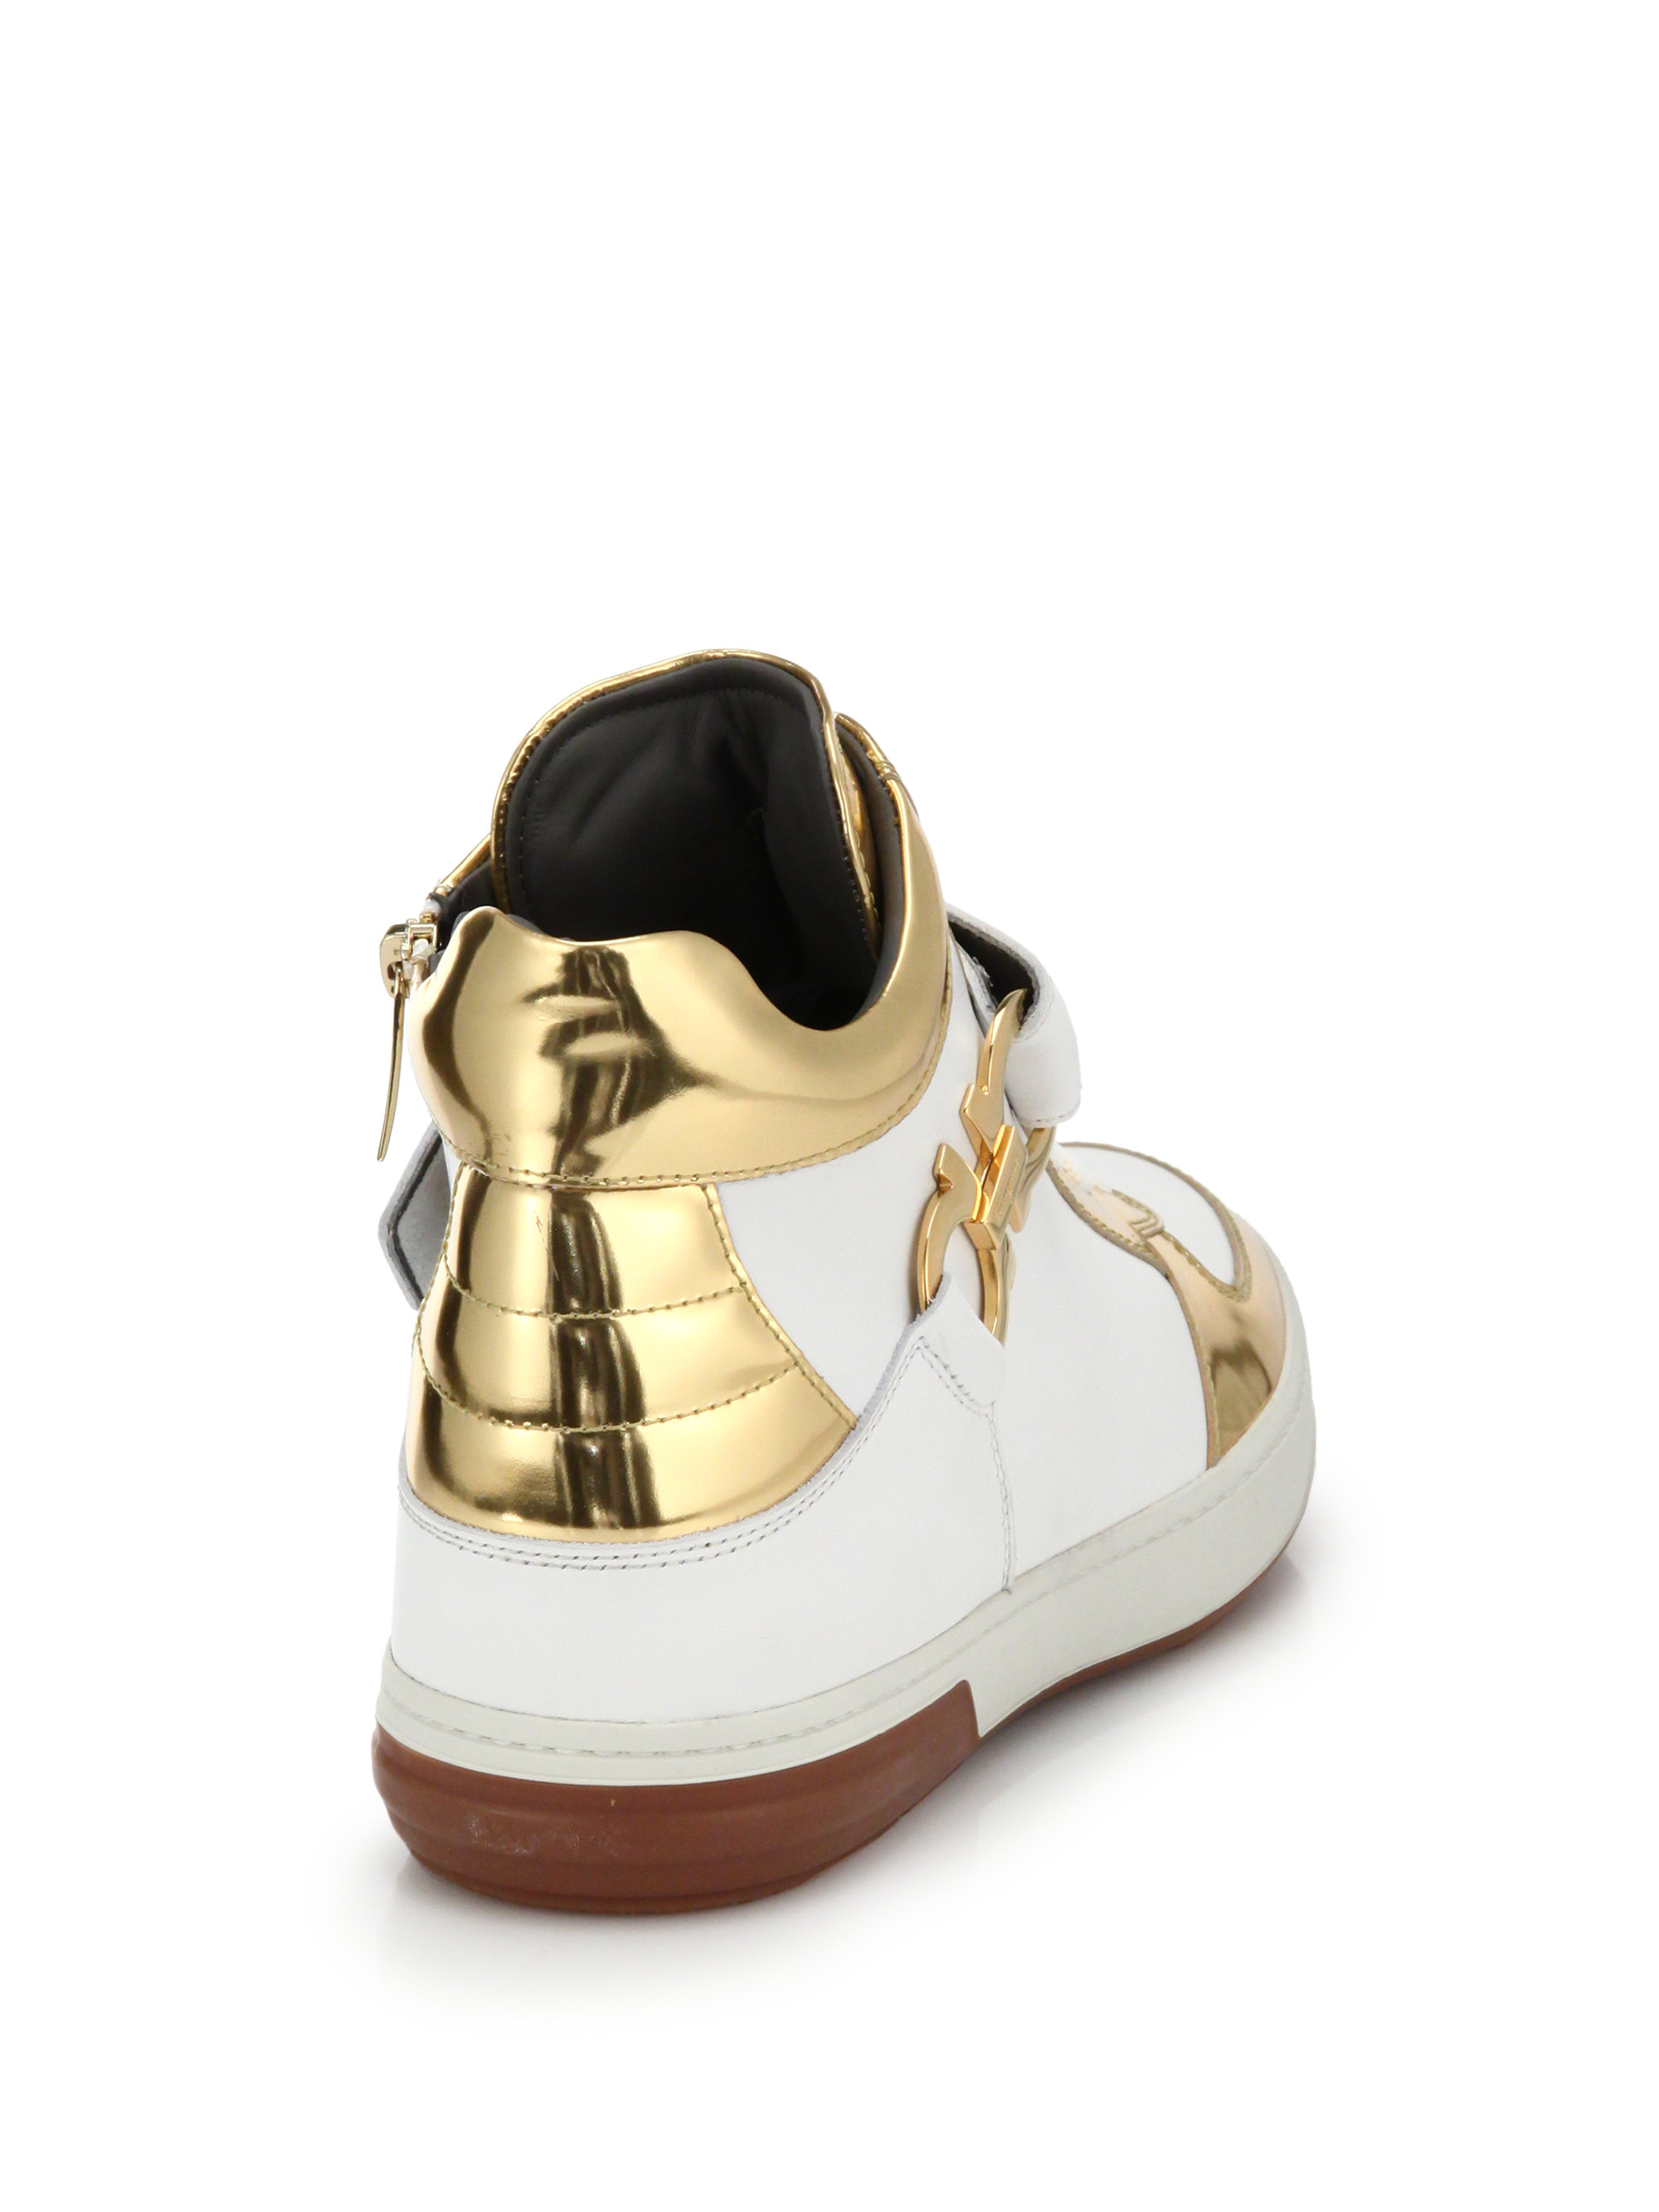 Ferragamo Leather High Top Sneakers In Gold White